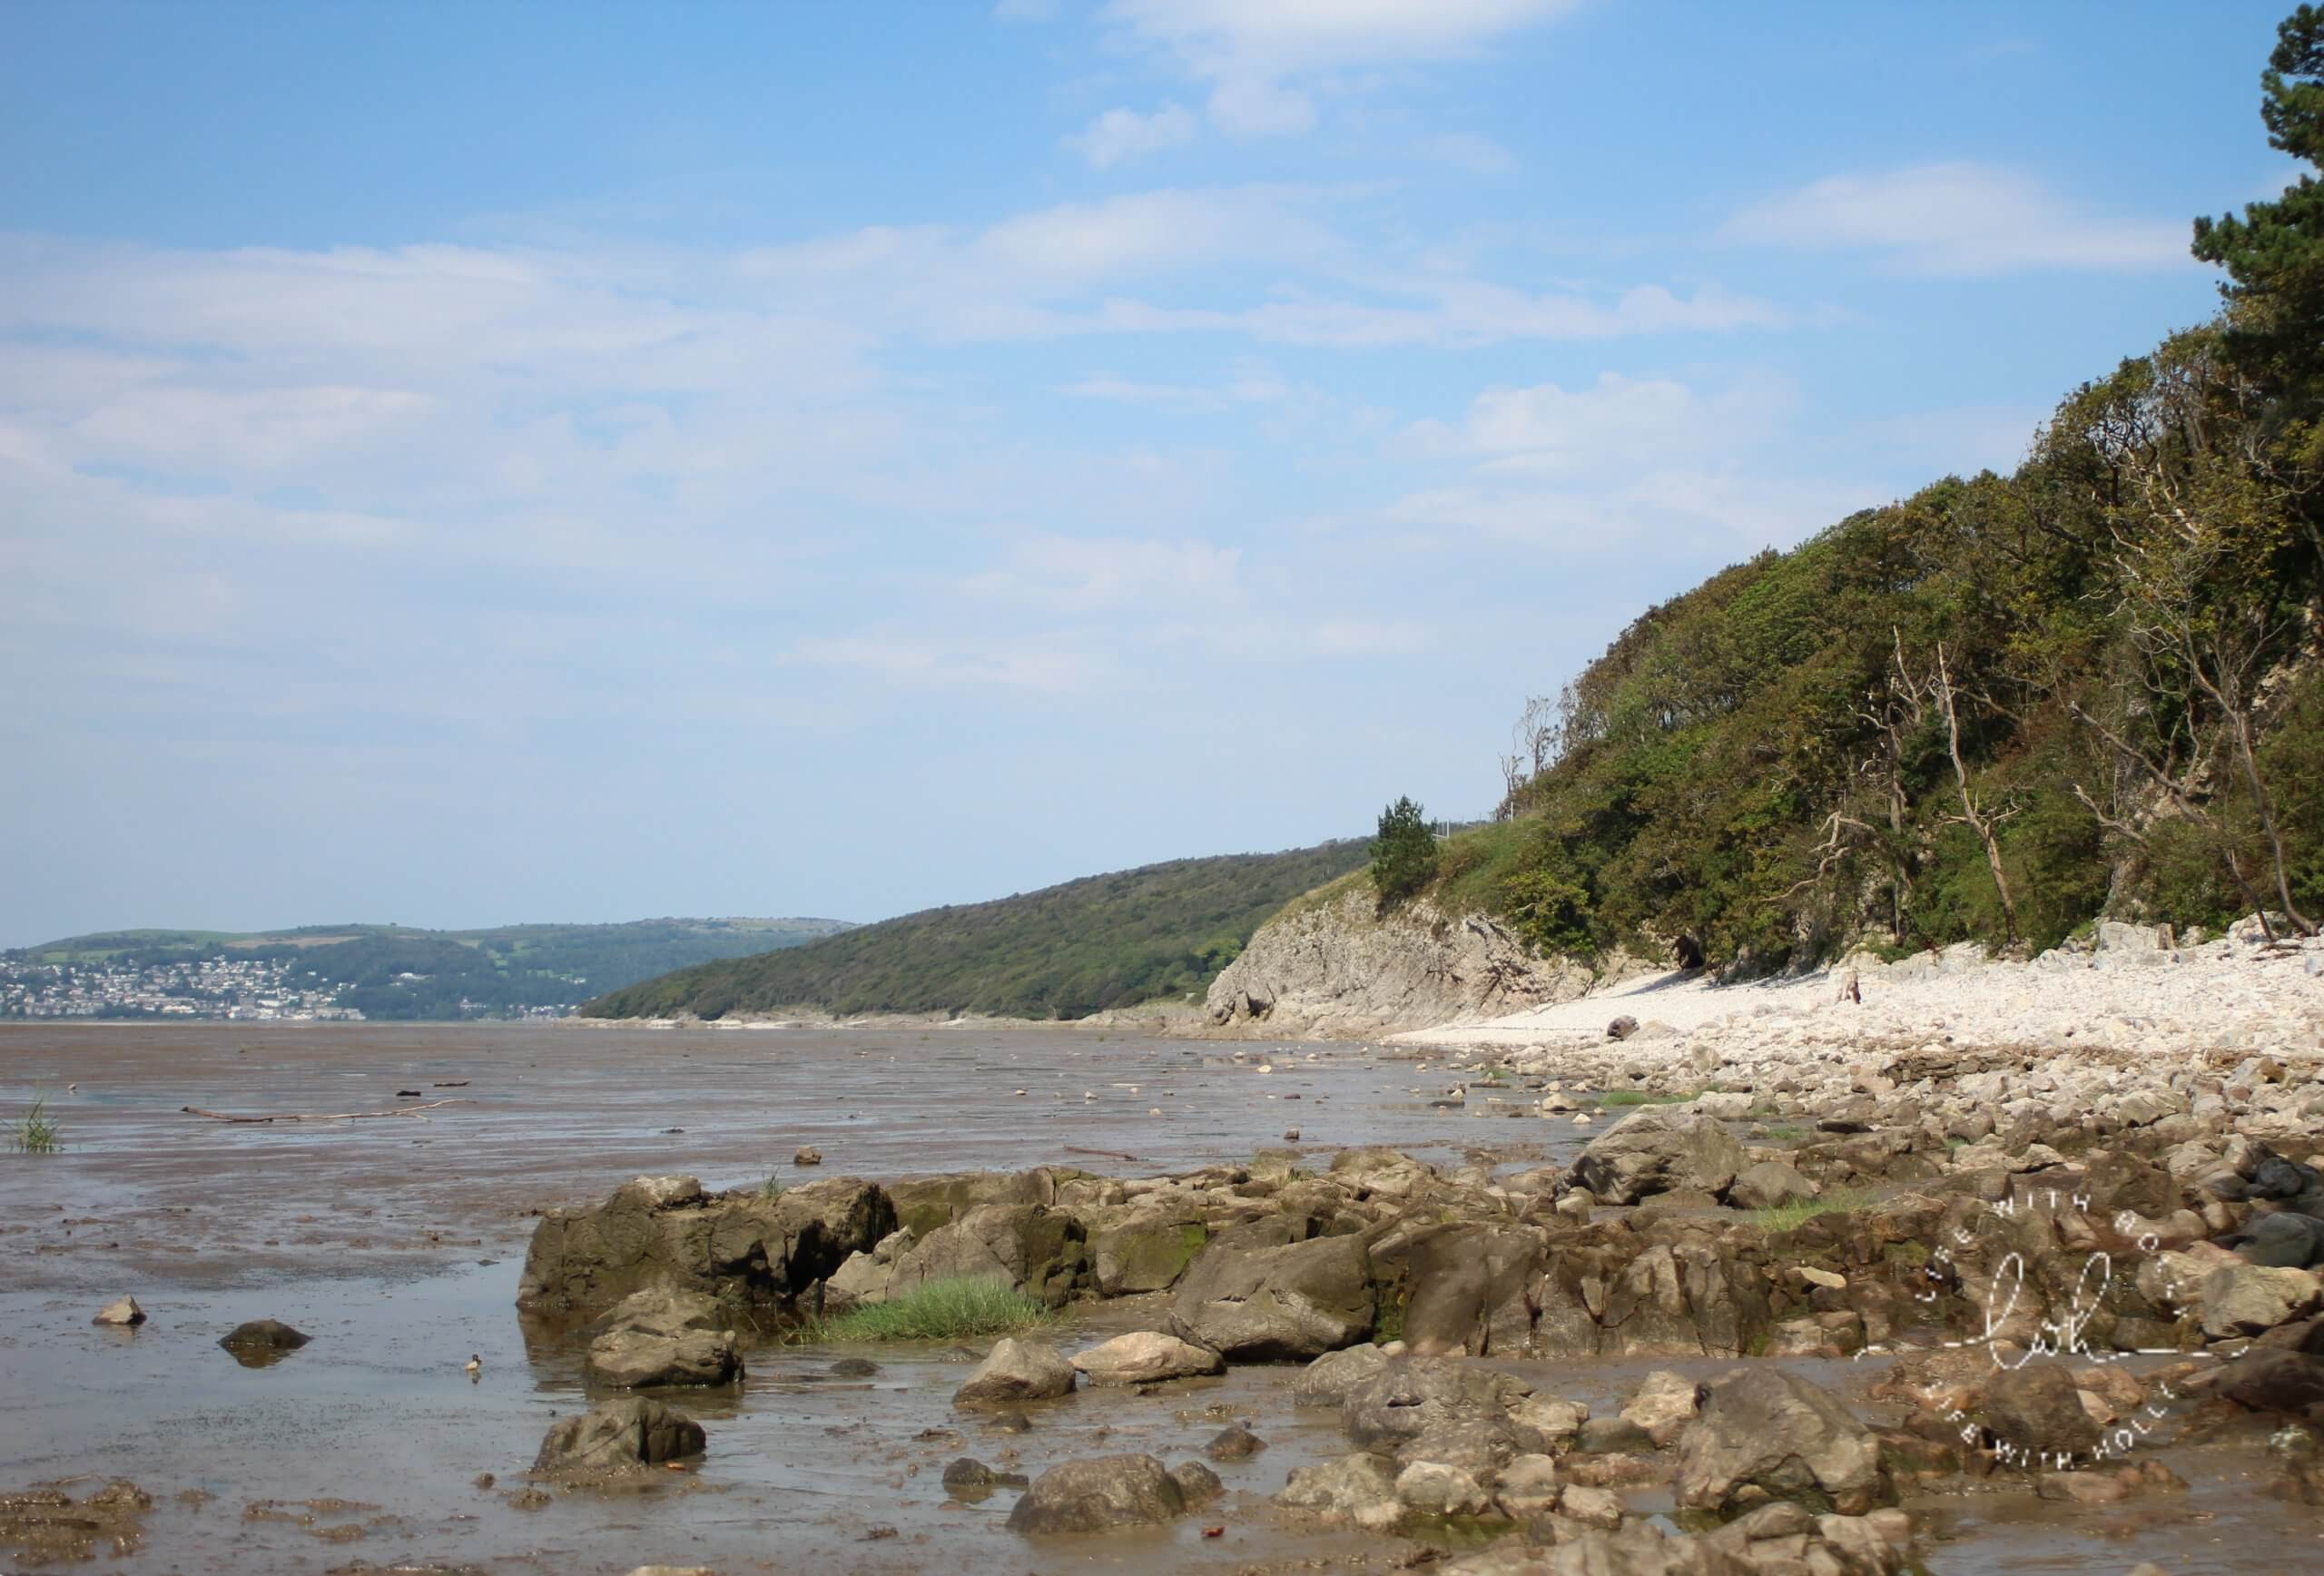 Silverdale Beach - Short Break to Silverdale